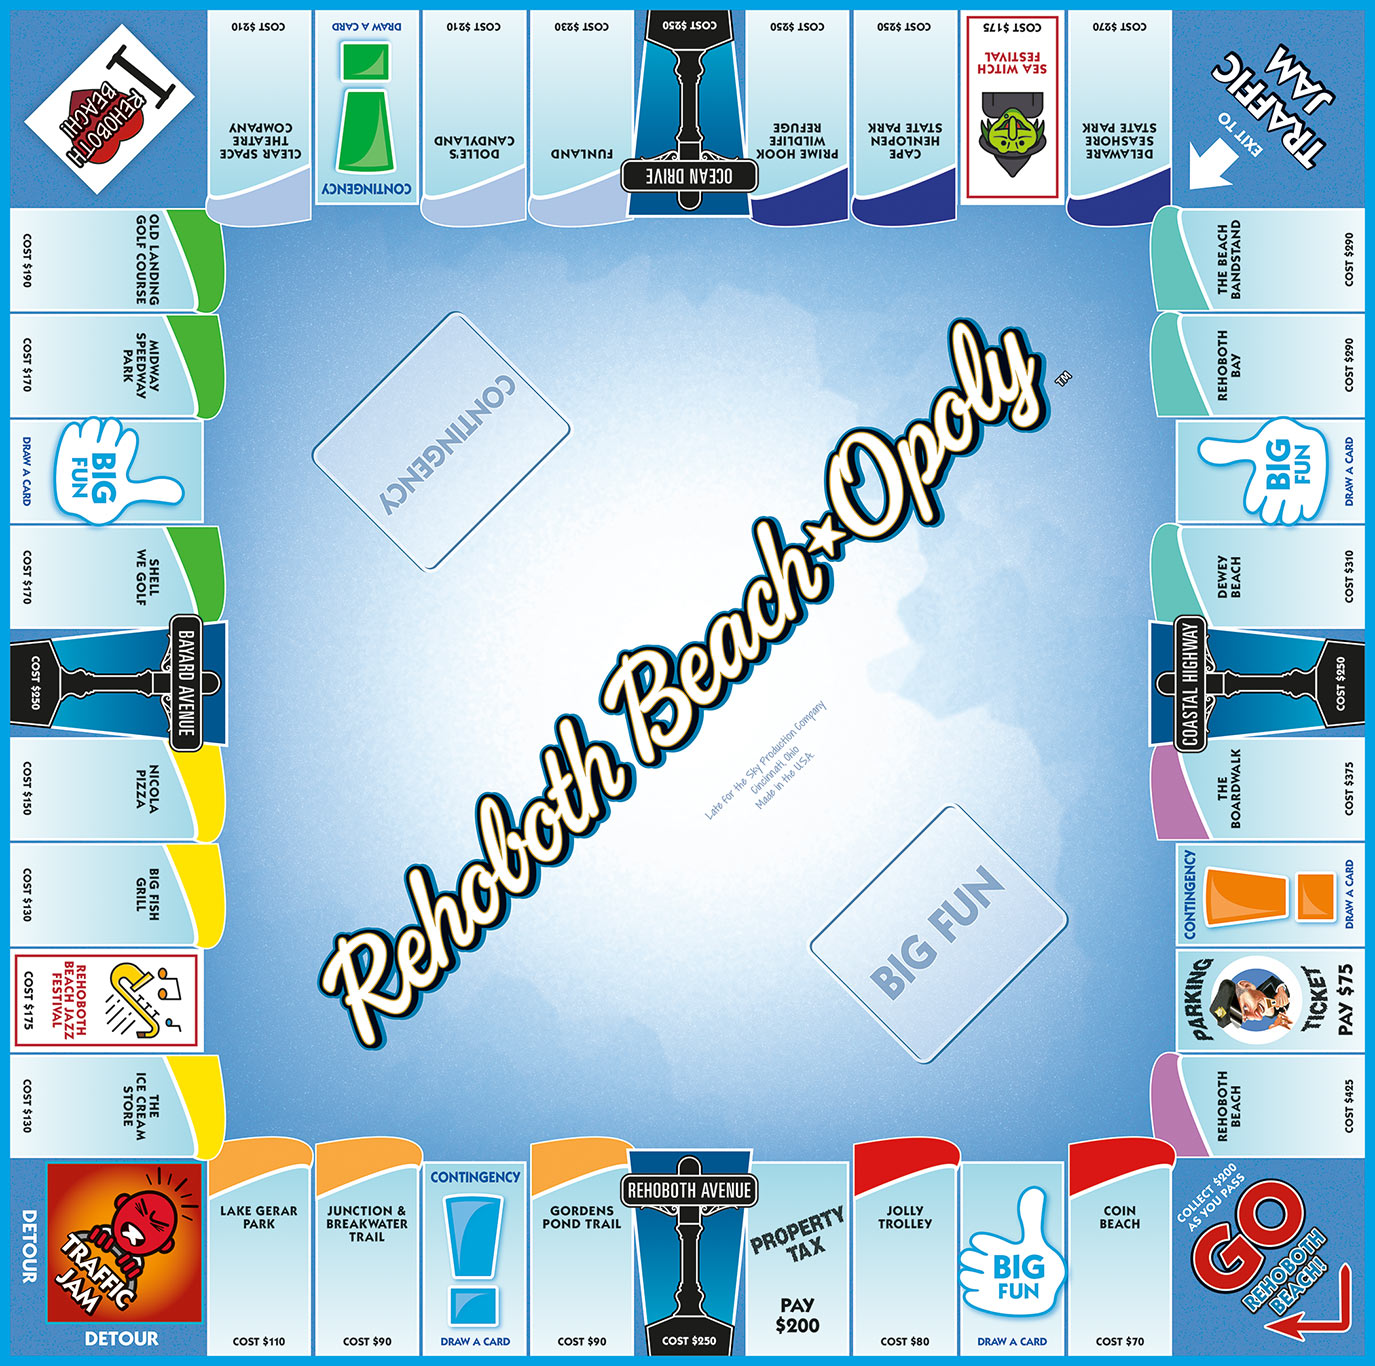 REHOBOTH BEACH-OPOLY Board Game